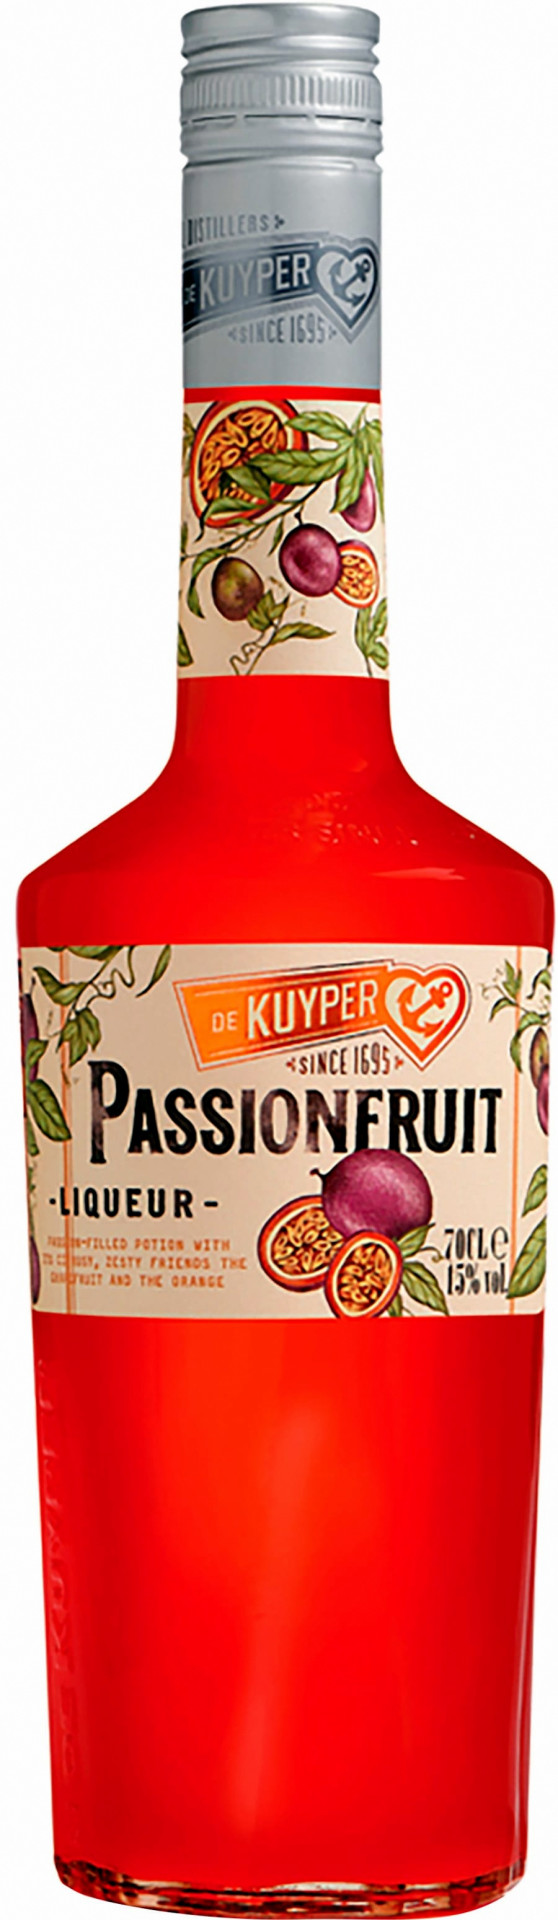 De Kuyper Passion Fruit 0,7l